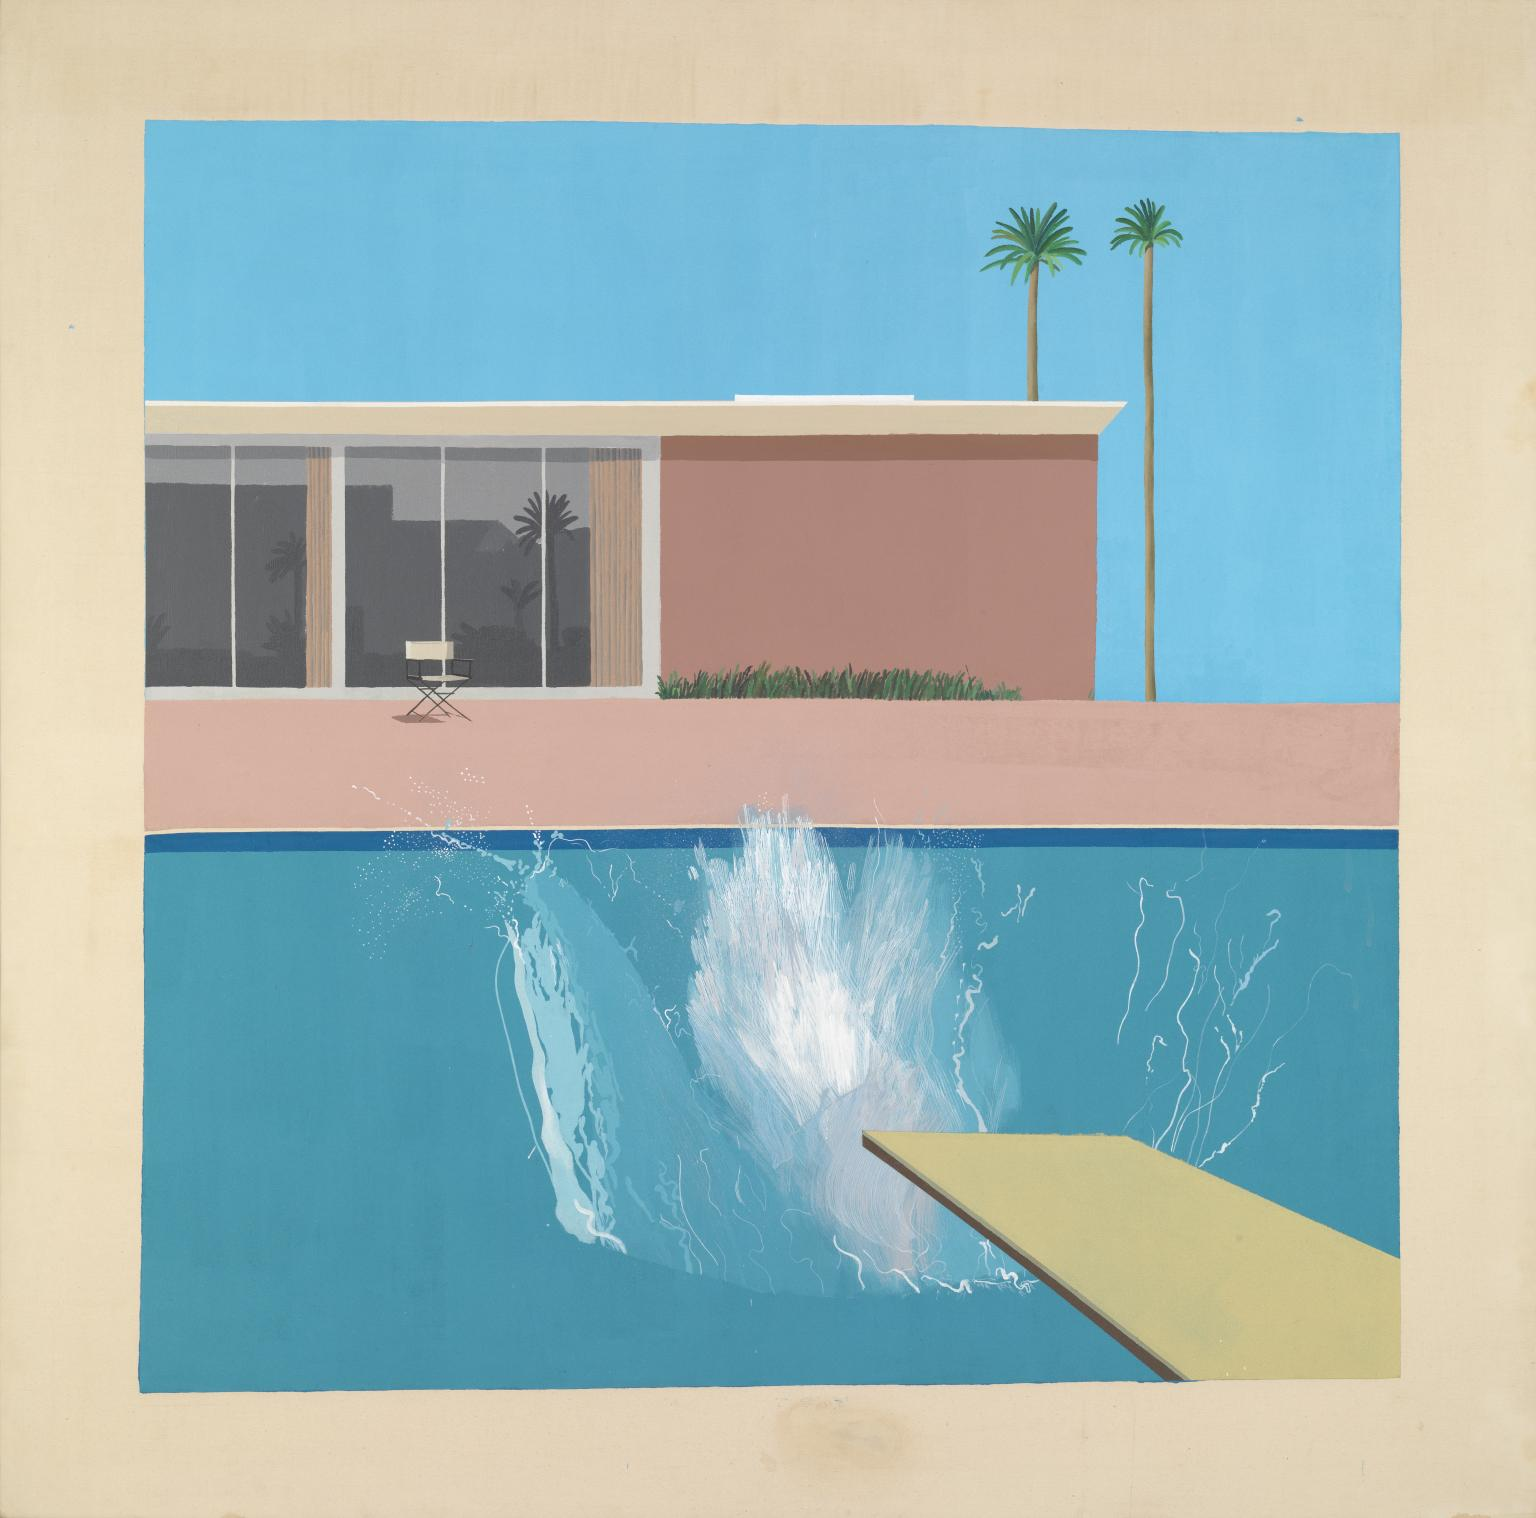 A Bigger Splash, by David Hockney)